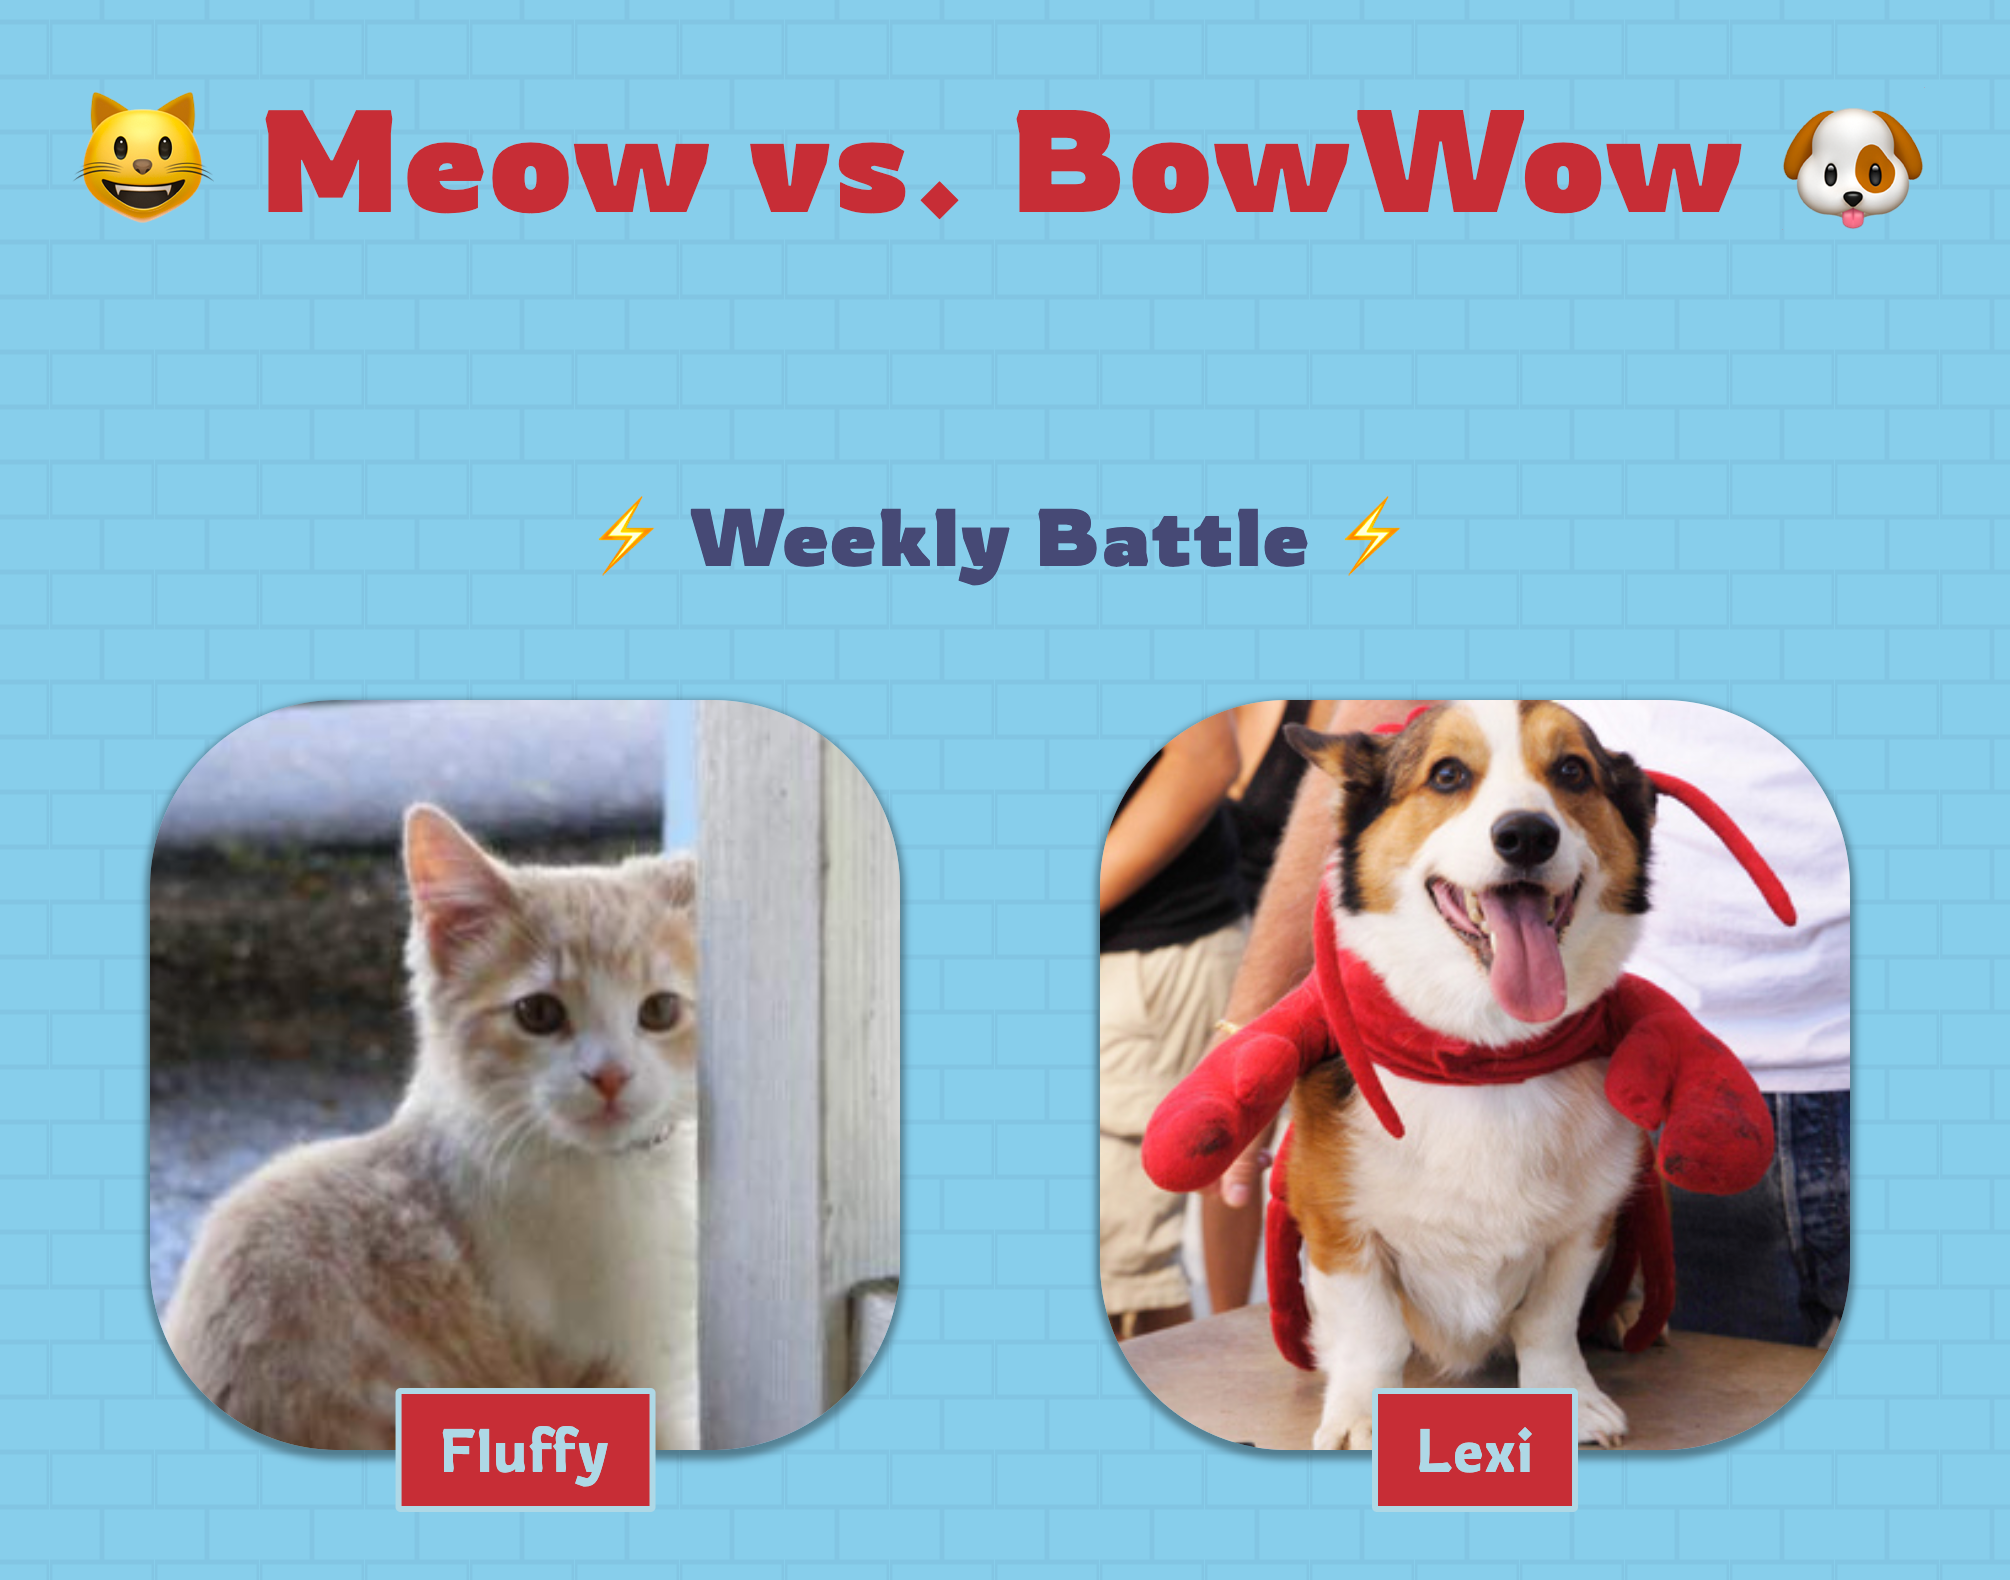 Screenshot of the site, showing a Meow vs. Bow Wow heading above a Weekly Battle subheading, followed by a photo of a tabby cat named Fluffy and one of a happy dog named Lexi.